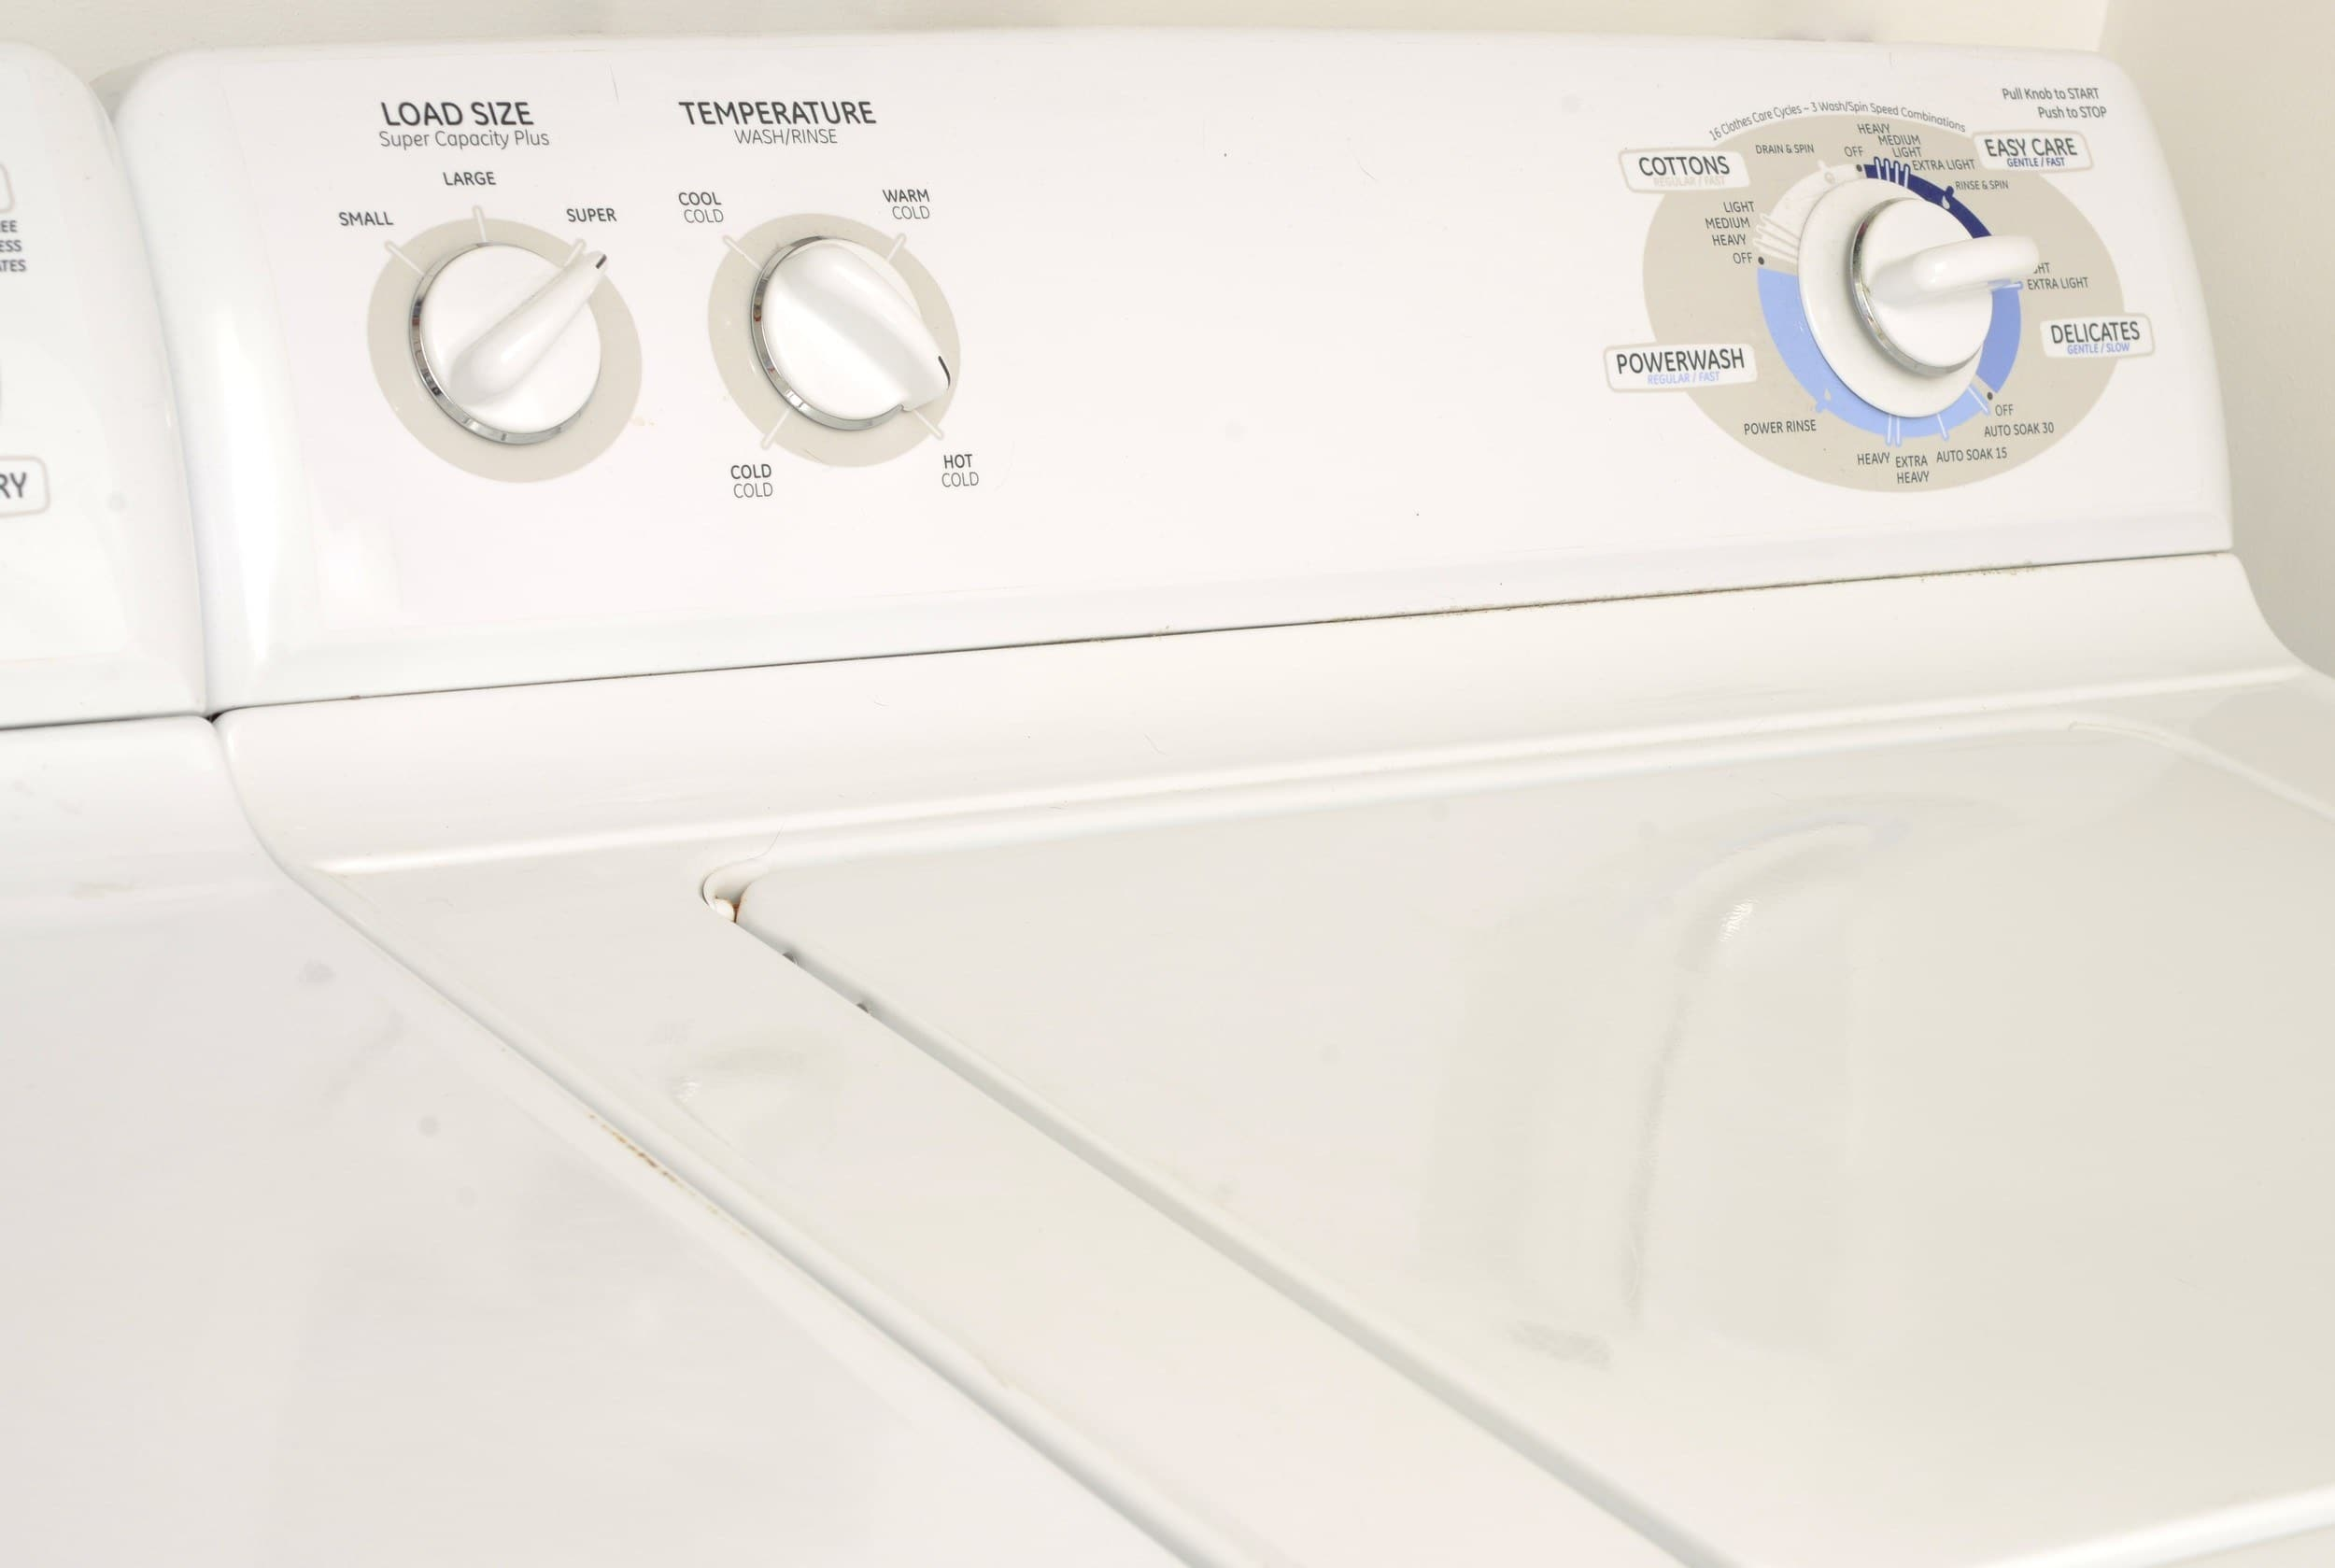 Washer/Dryer at Metro Six55 Apartments